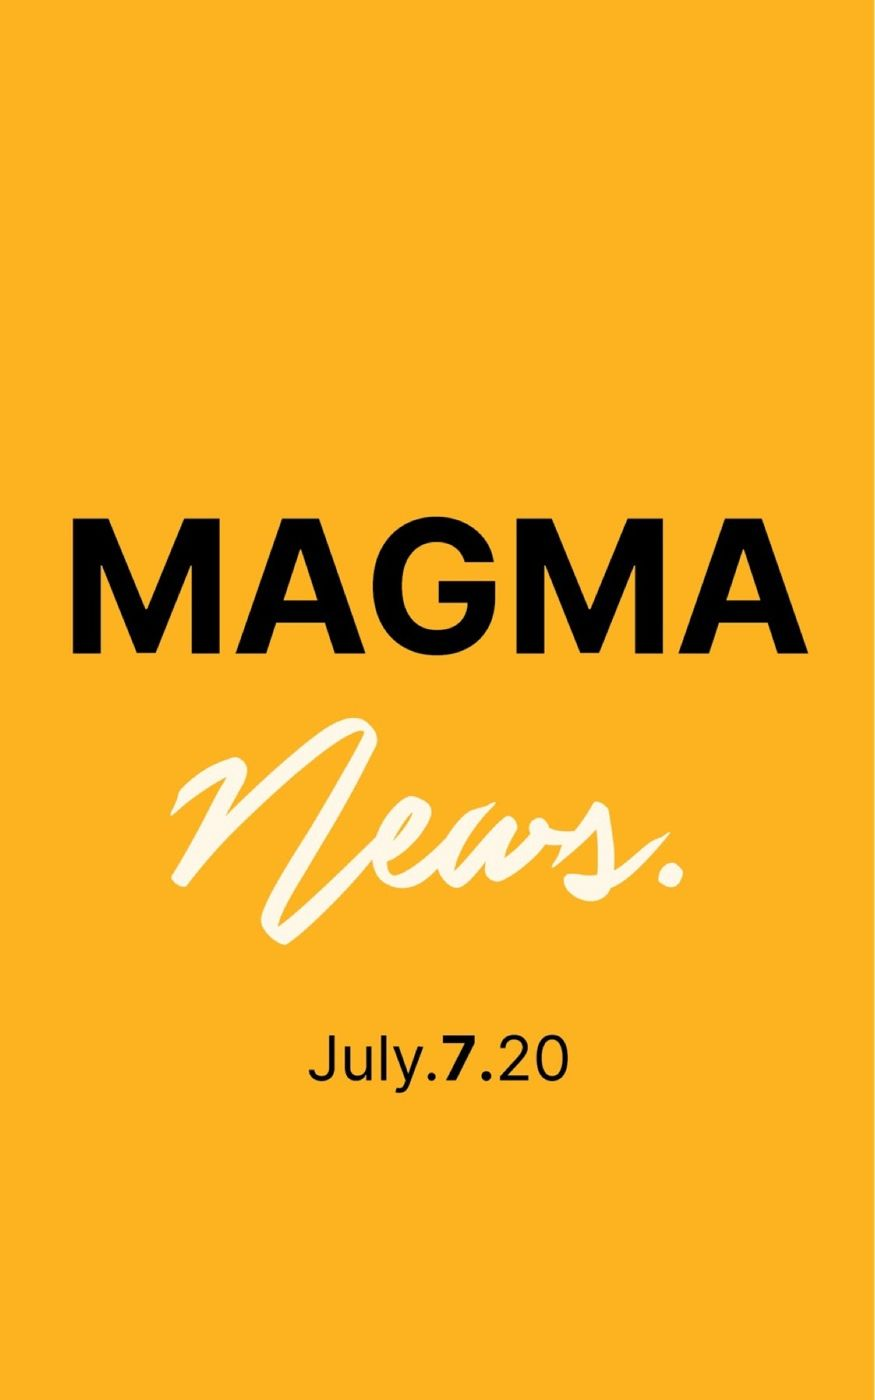 Magma News | July 7, 2020